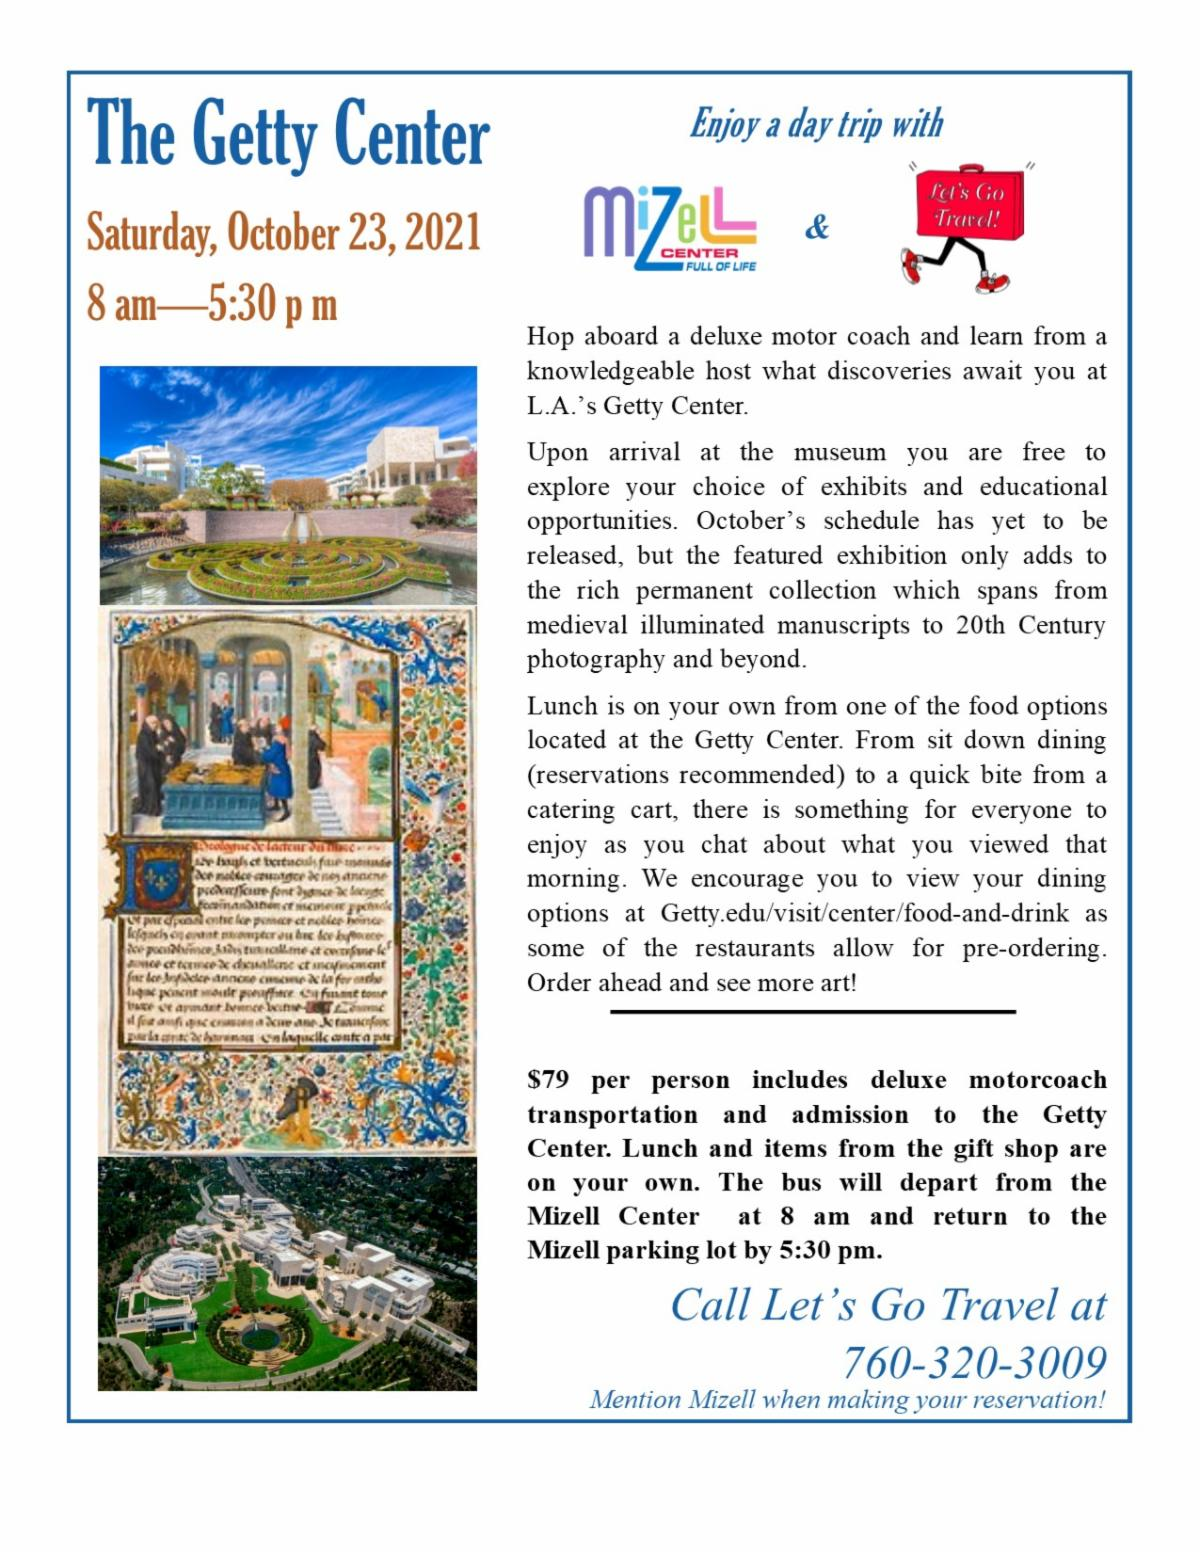 Enjoy a Day Trip From The Mizell Center To The Getty Center in Los Angeles